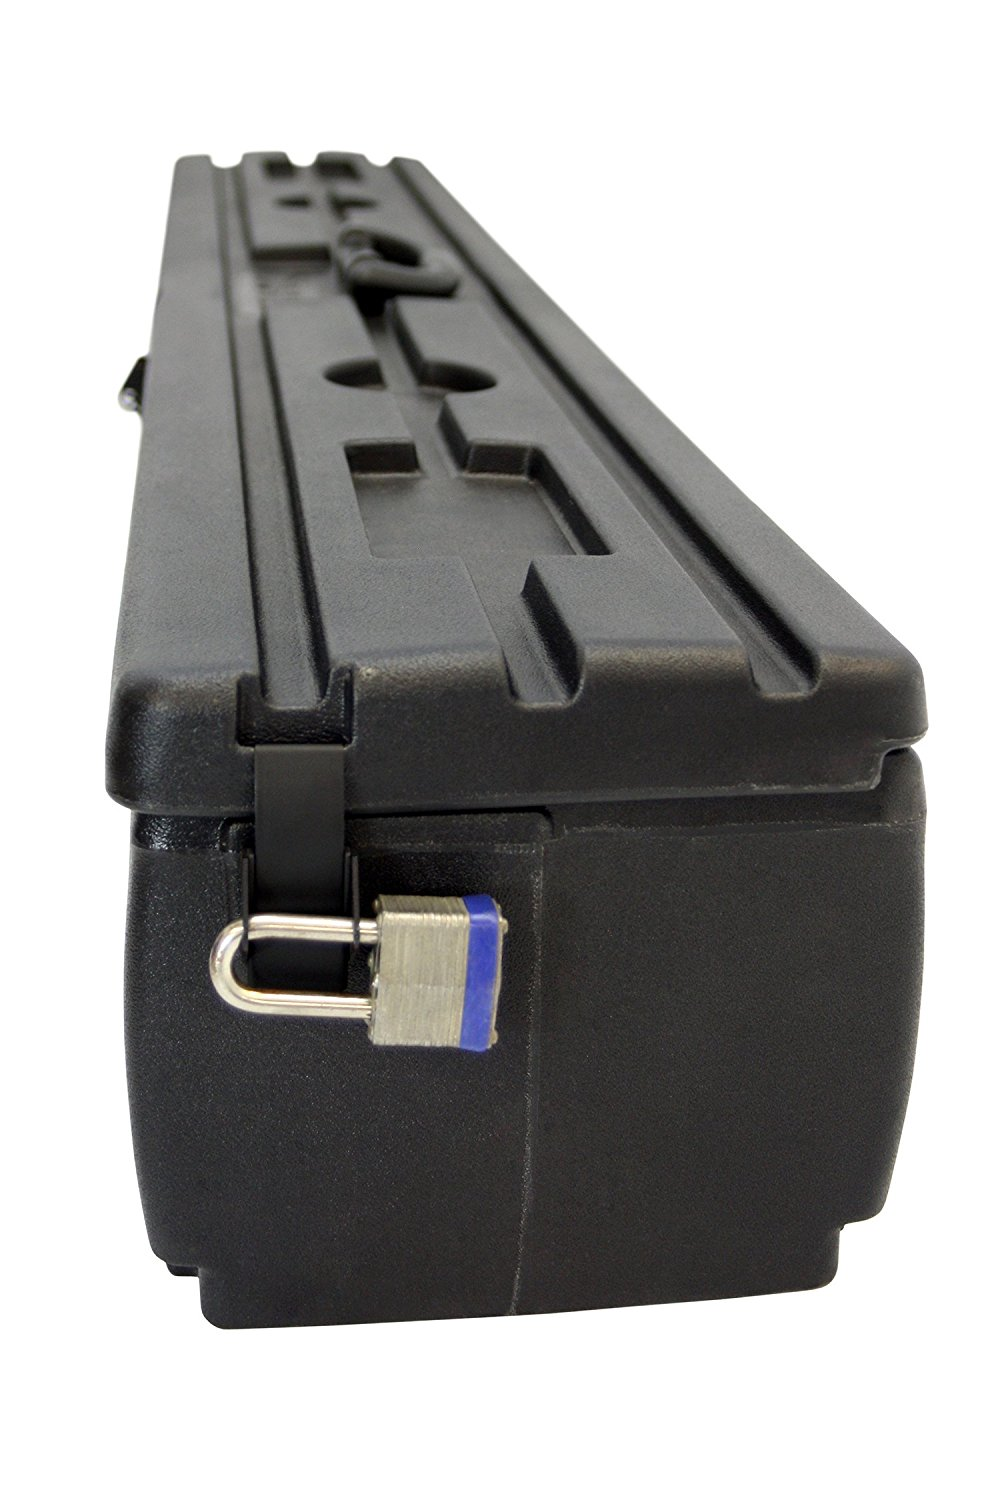 plastic tool box for truck bed